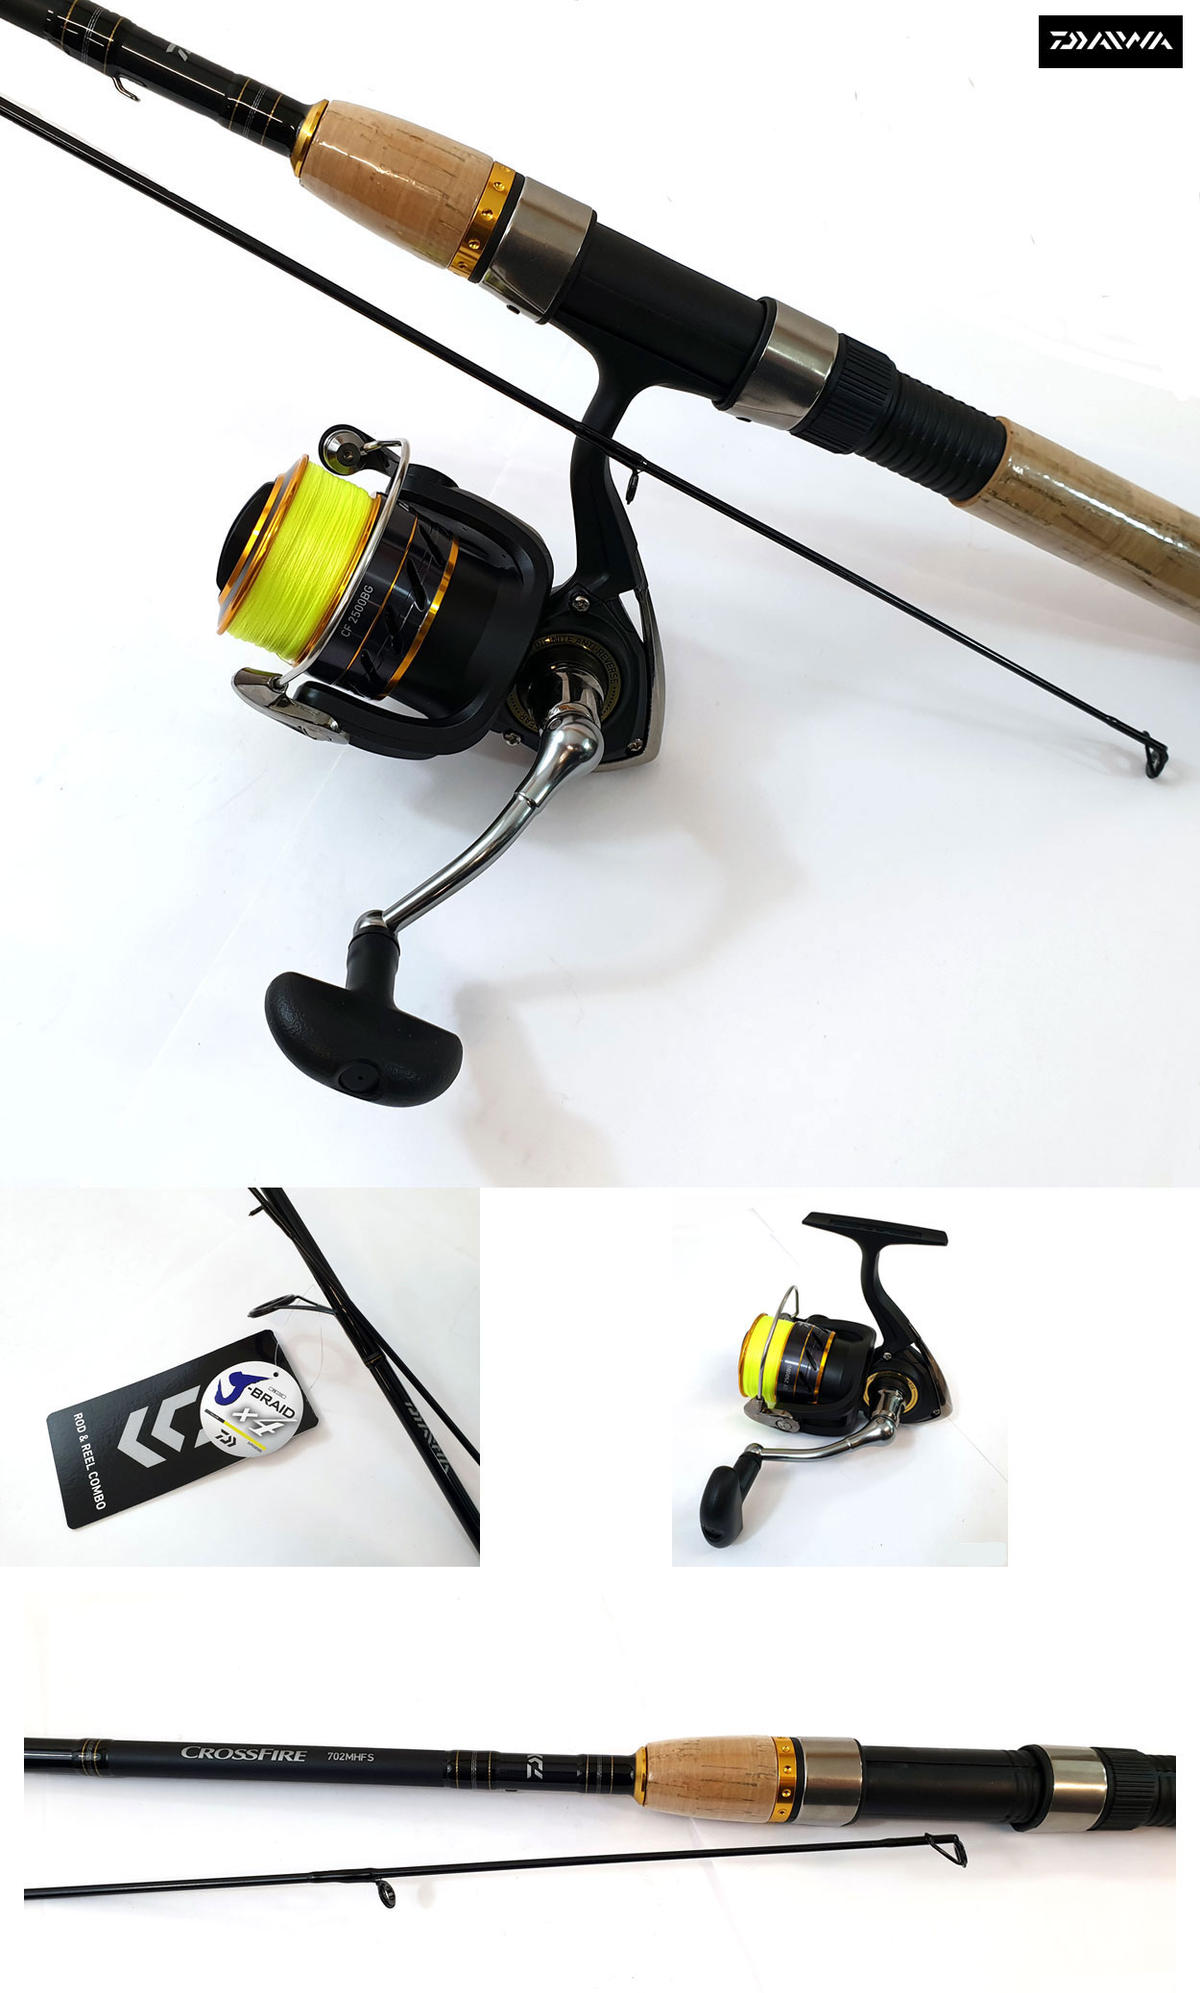 Daiwa Crossfire X Fishing Combo - 7ft Rod & Crossfire Reel - Loaded with J-Braid